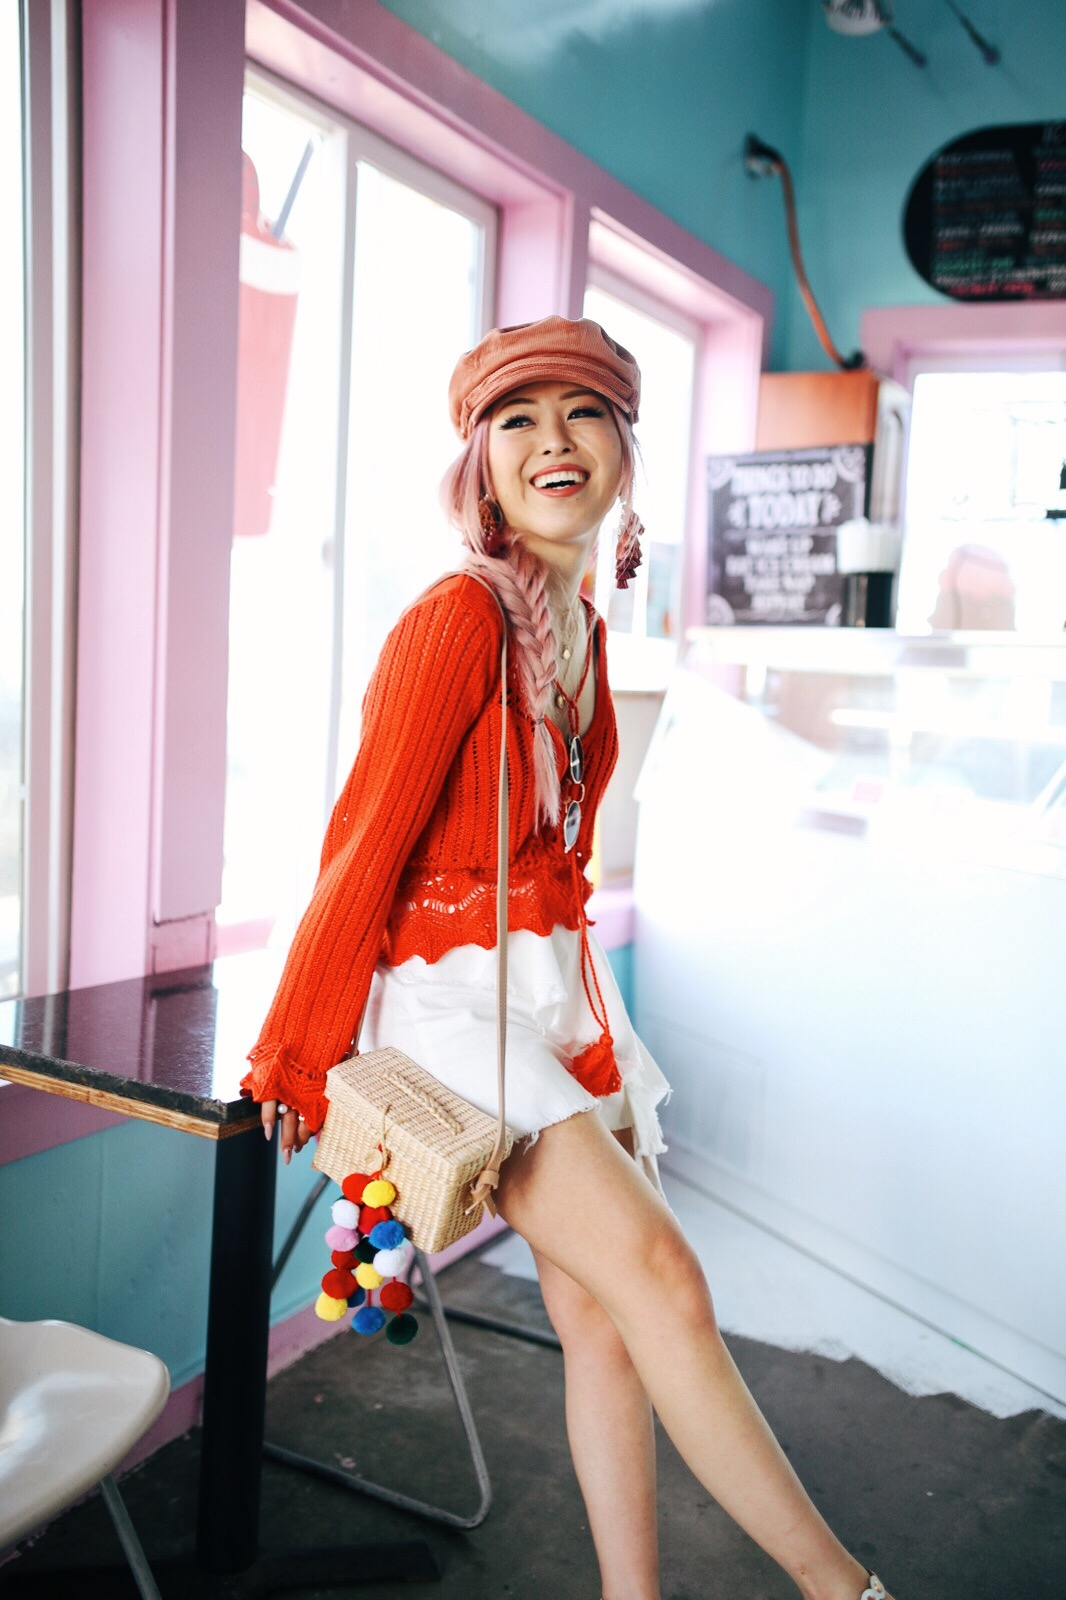 River Island Pink cord baker boy hat-Pink ombre tassel drop earrings-Red crotchet knit tassel crop top-White frill denim skort-White scallop block heel sandals-Shein Straw box bag with pom pom-Aikas Love Closet-Seattle Style Fashion Blogger-Japanese-Pink Hair-Side fishtail braid-summer style-smile 3